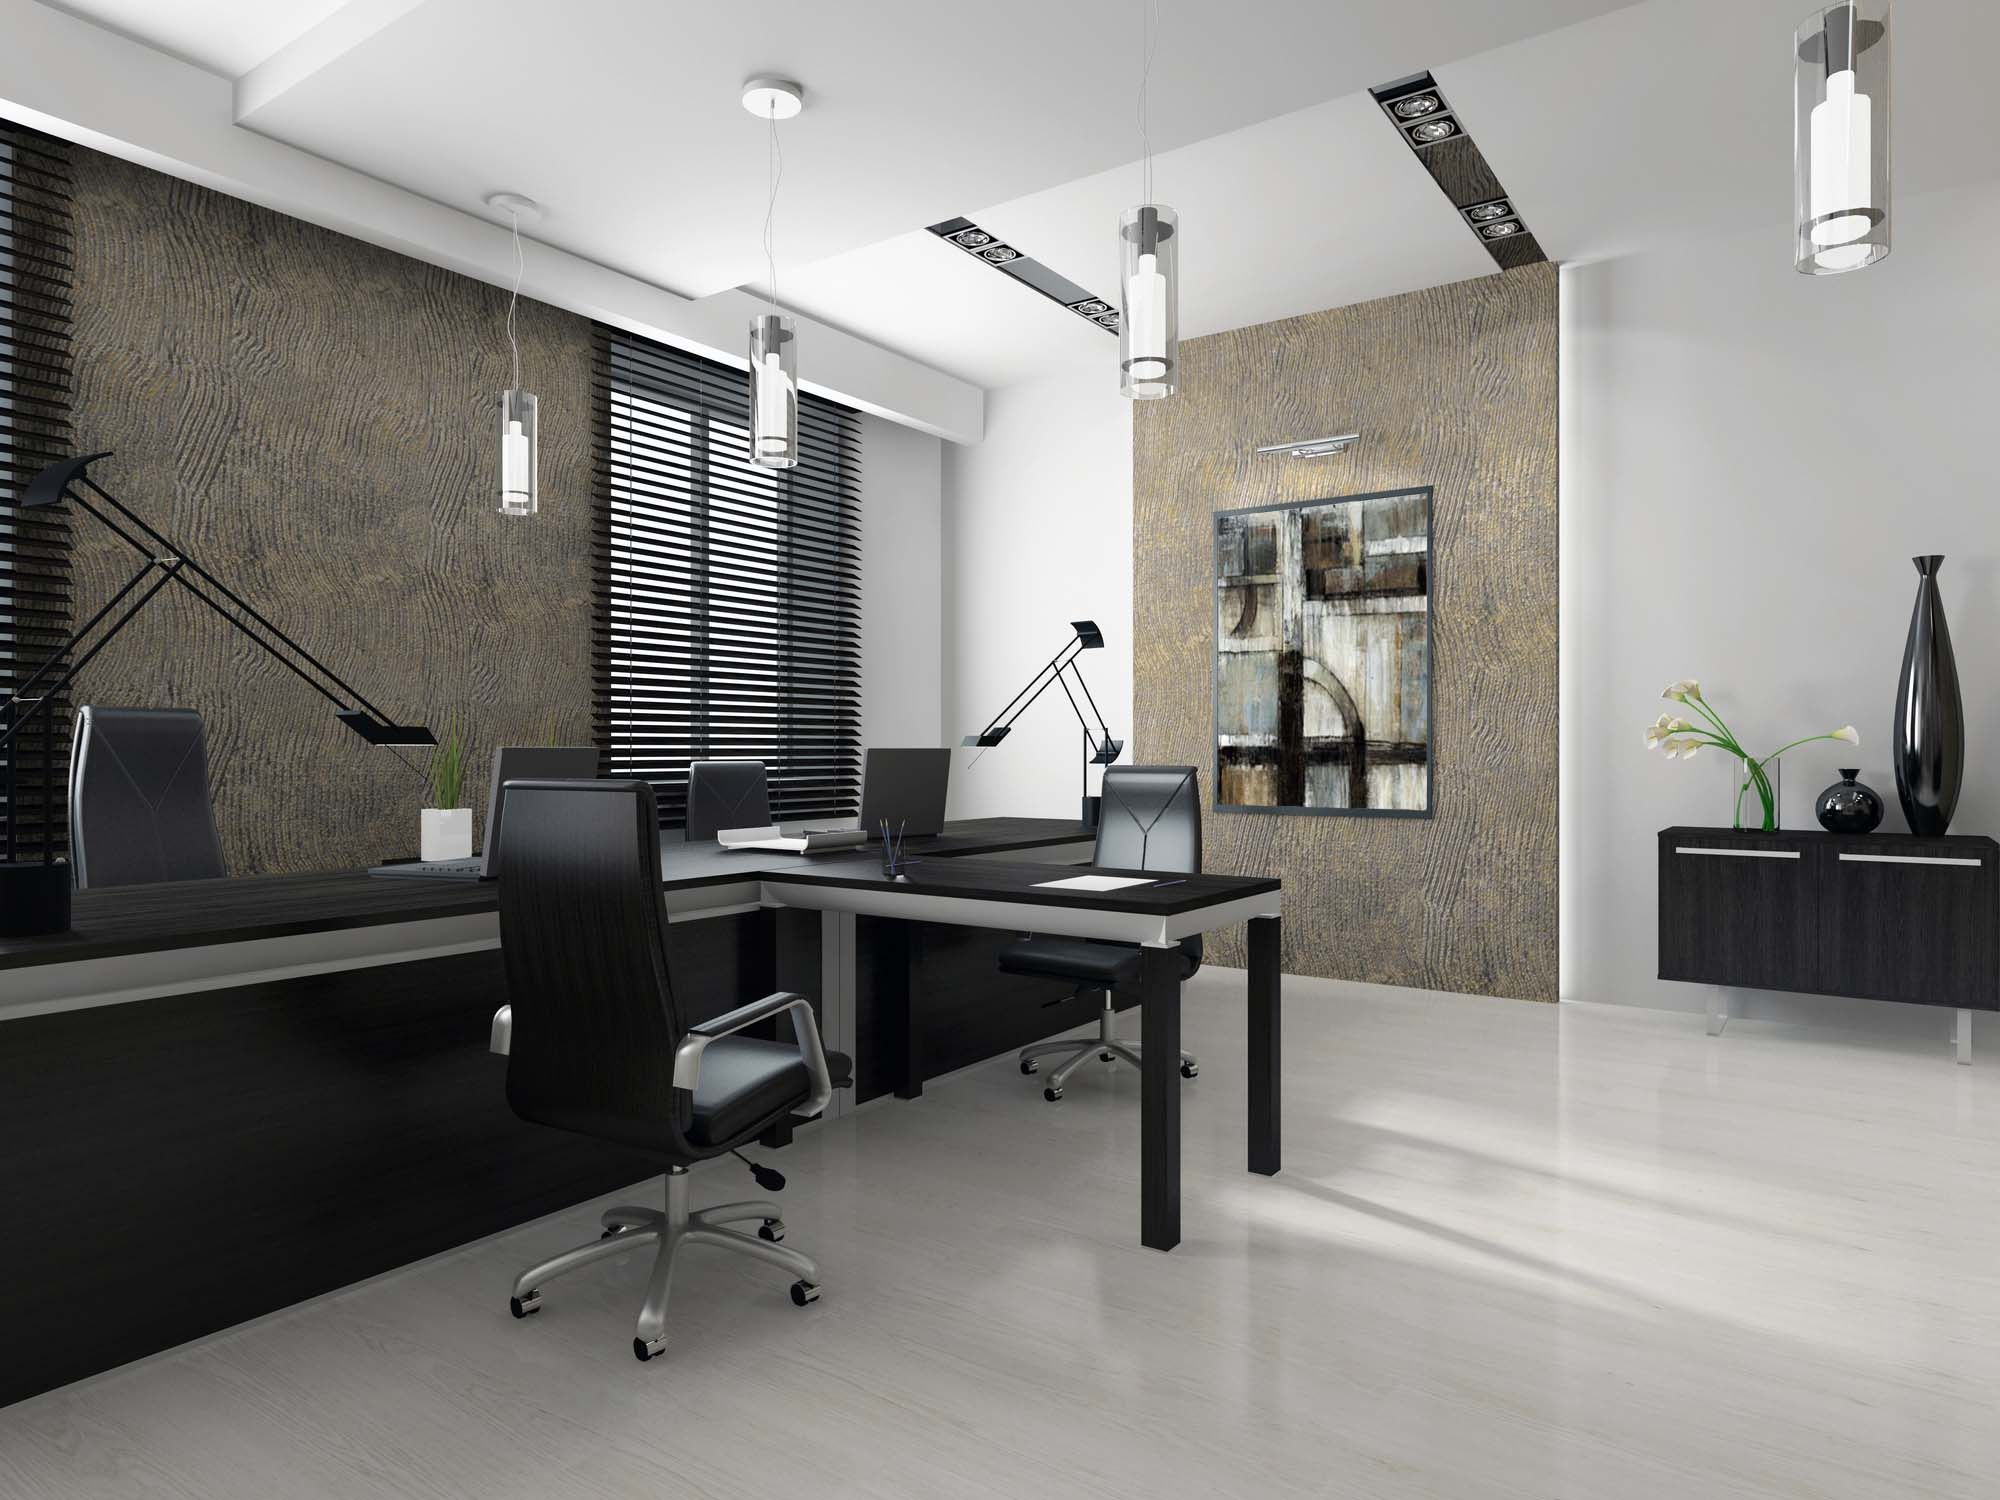 floor and decor corporate office. New York Siluette  Sepia Wall mural Wallpaper Photowall Home decor Fototapet Call Text for sizes pricing t 317 402 5040 e sgooding